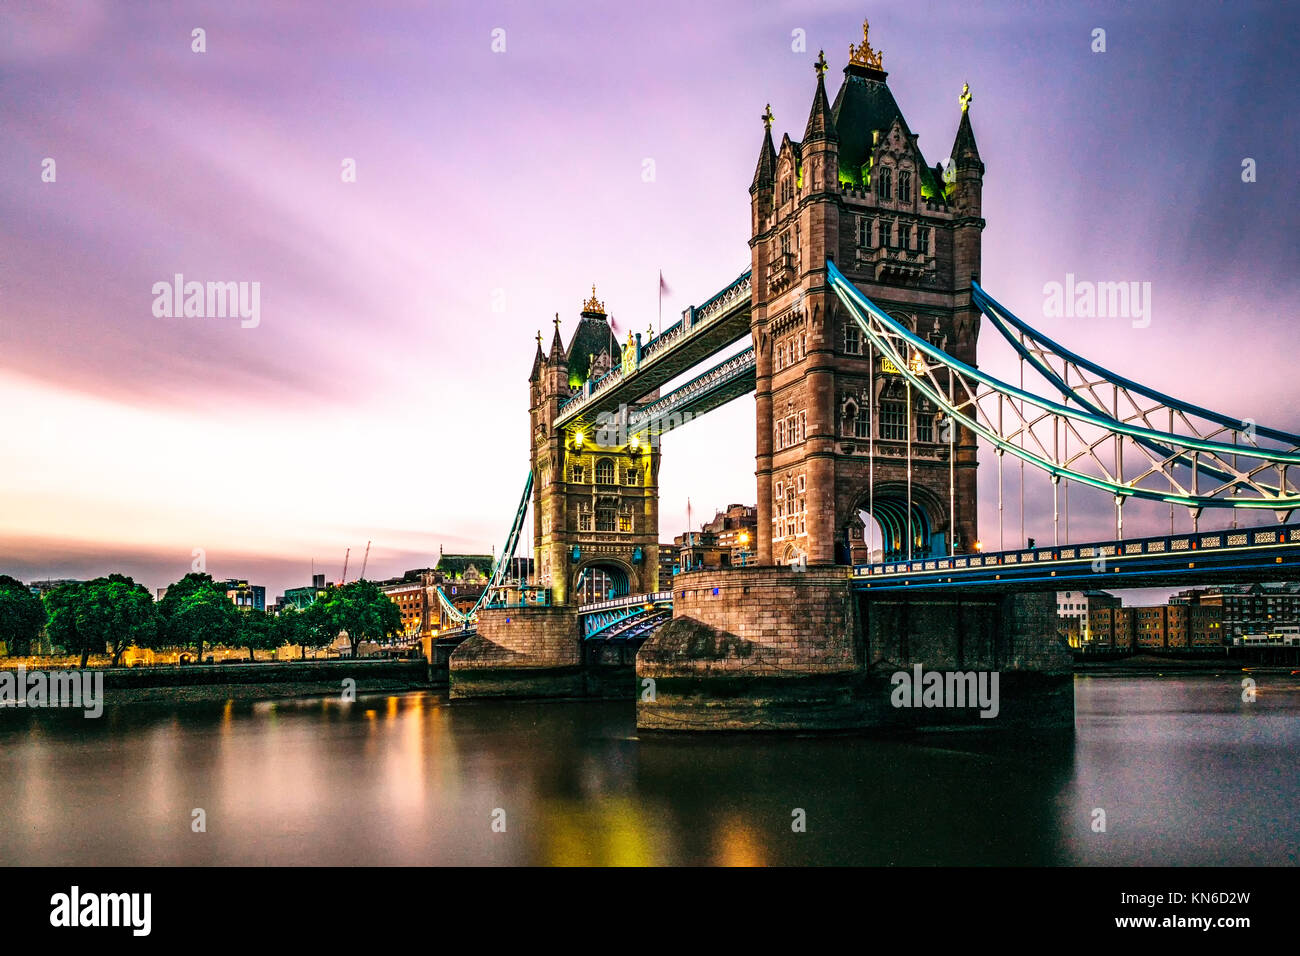 London Tower Bridge - Stock Image